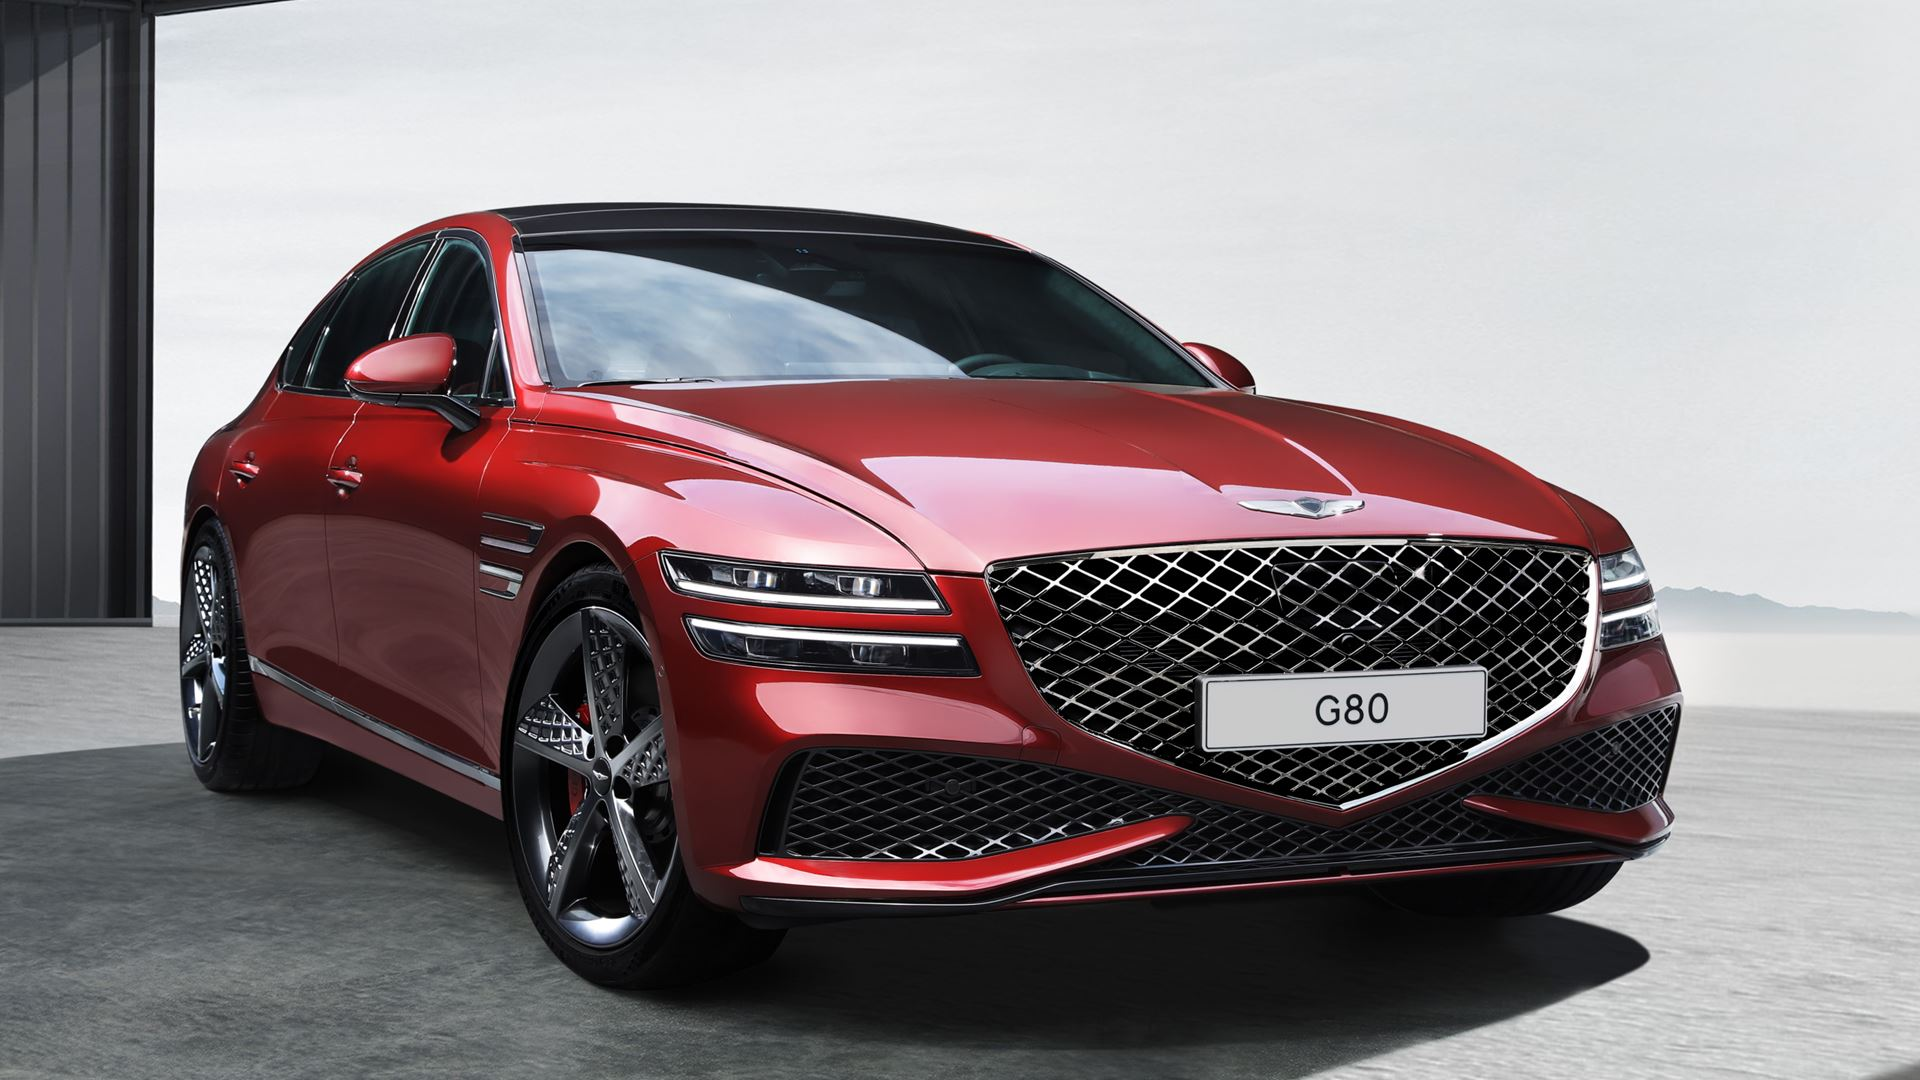 GENESIS UNVEILS IMAGES OF THE G80 SPORT